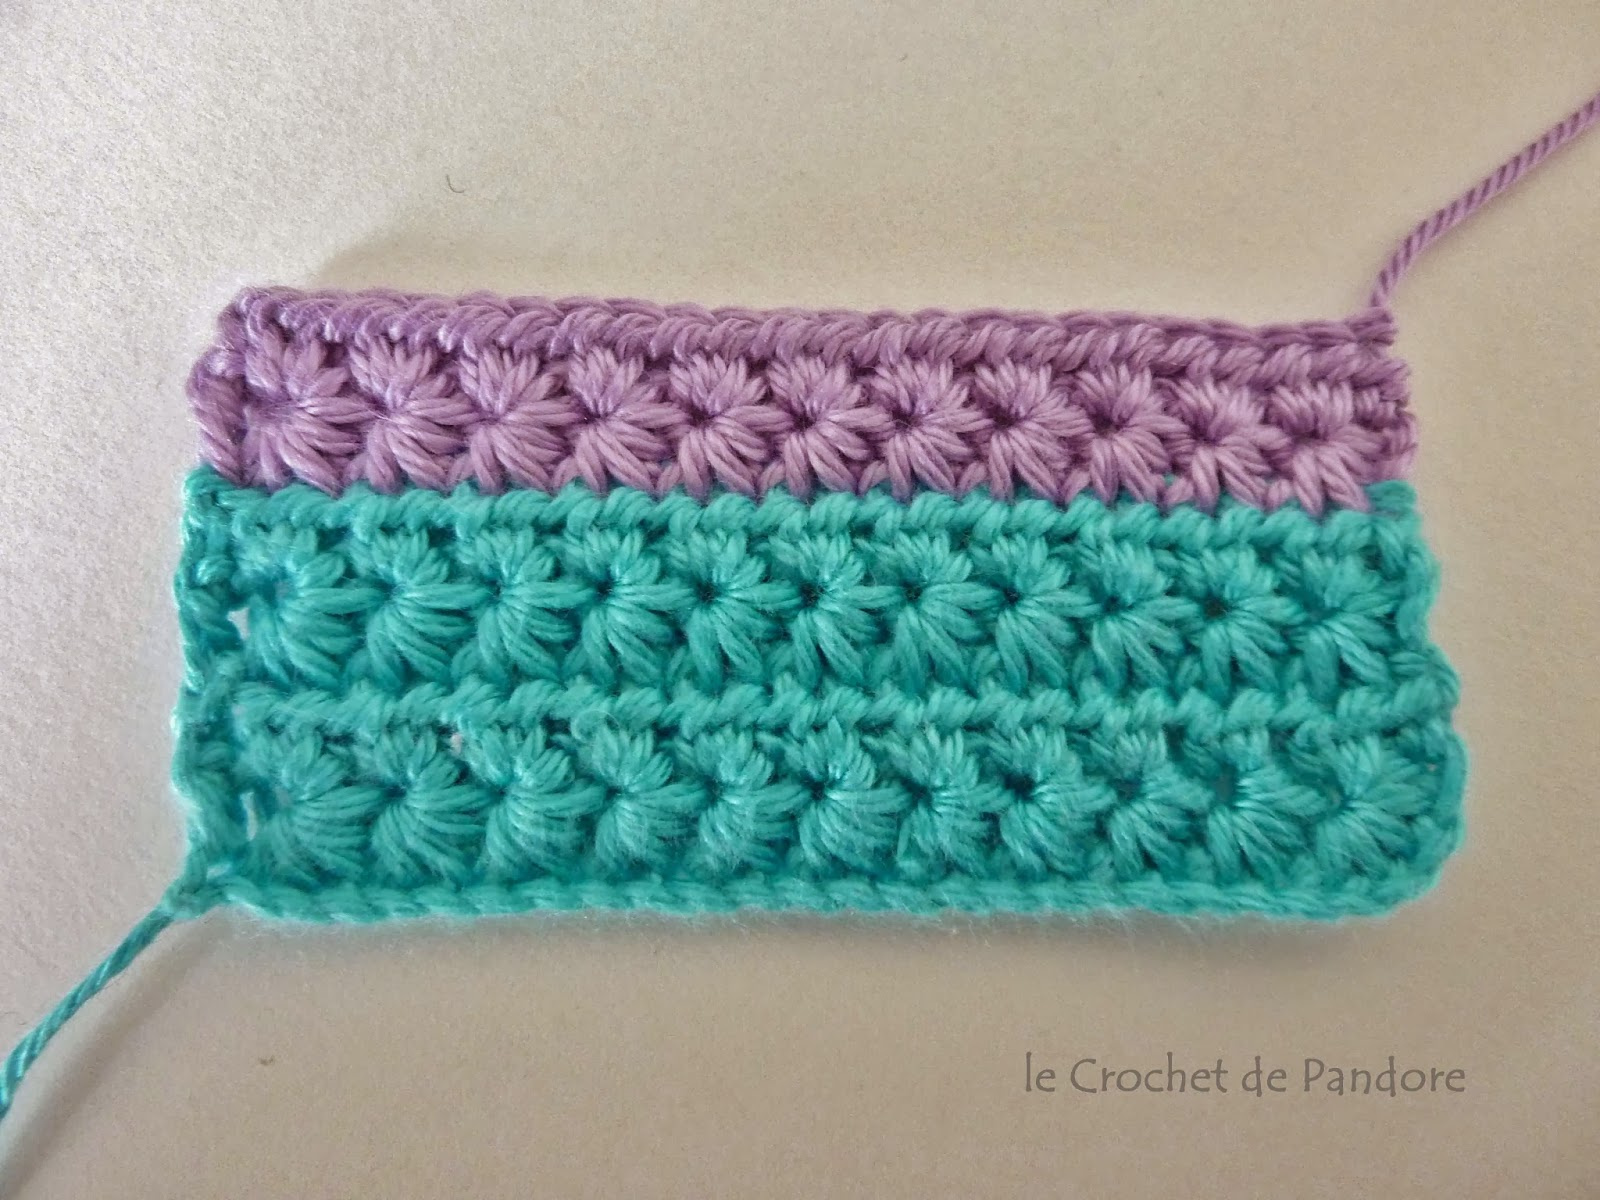 Souvent le Crochet de Pandore: Tuto du point étoile (star stitch) GE48